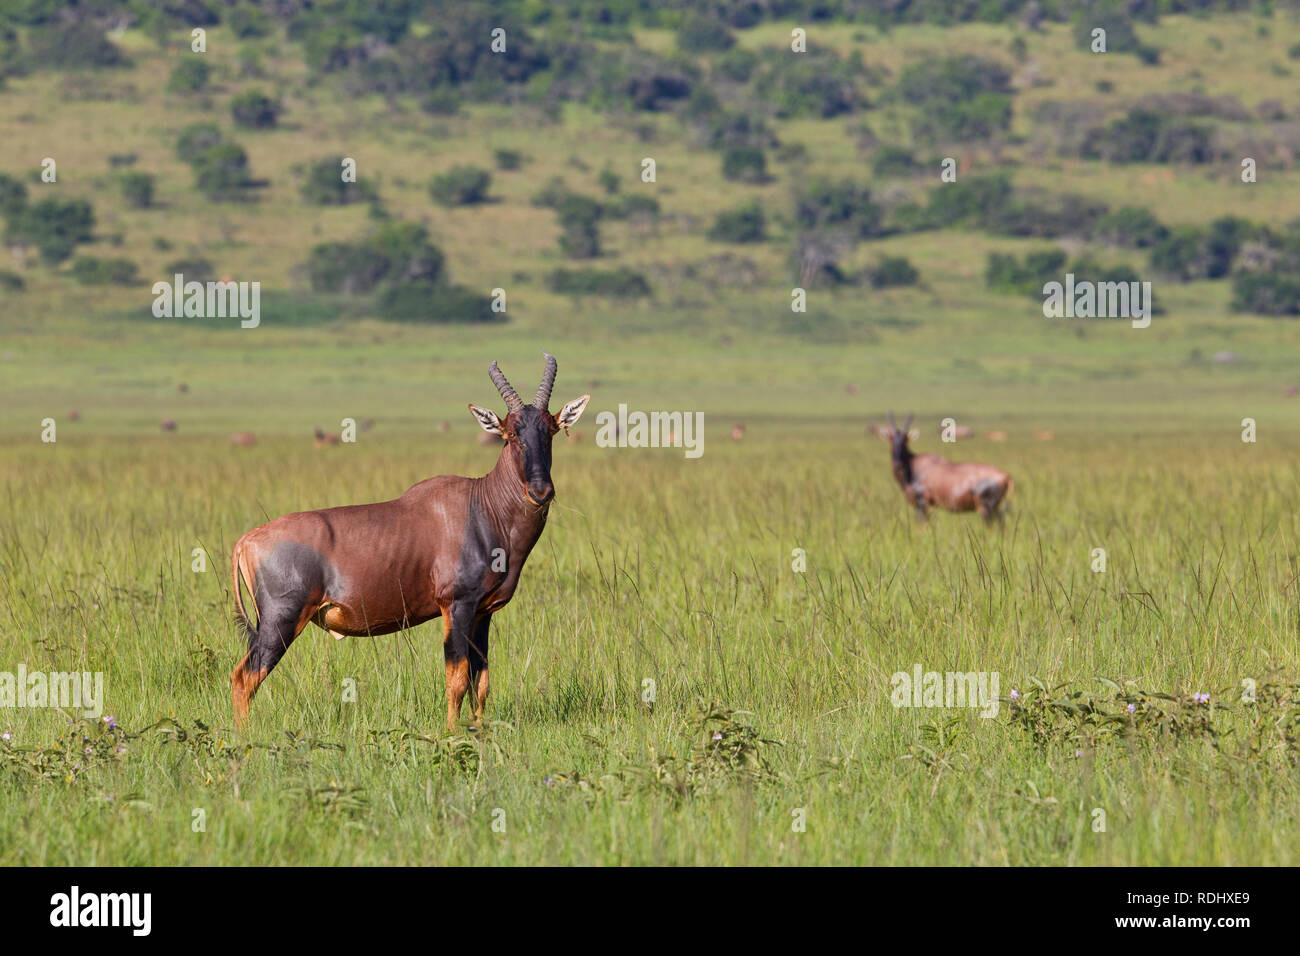 Topi, Damaliscus lunatus, graze in the recovered northern plains of Akagera National Park, Parc National de l'Akagera, Eastern Province, Rwanda. - Stock Image